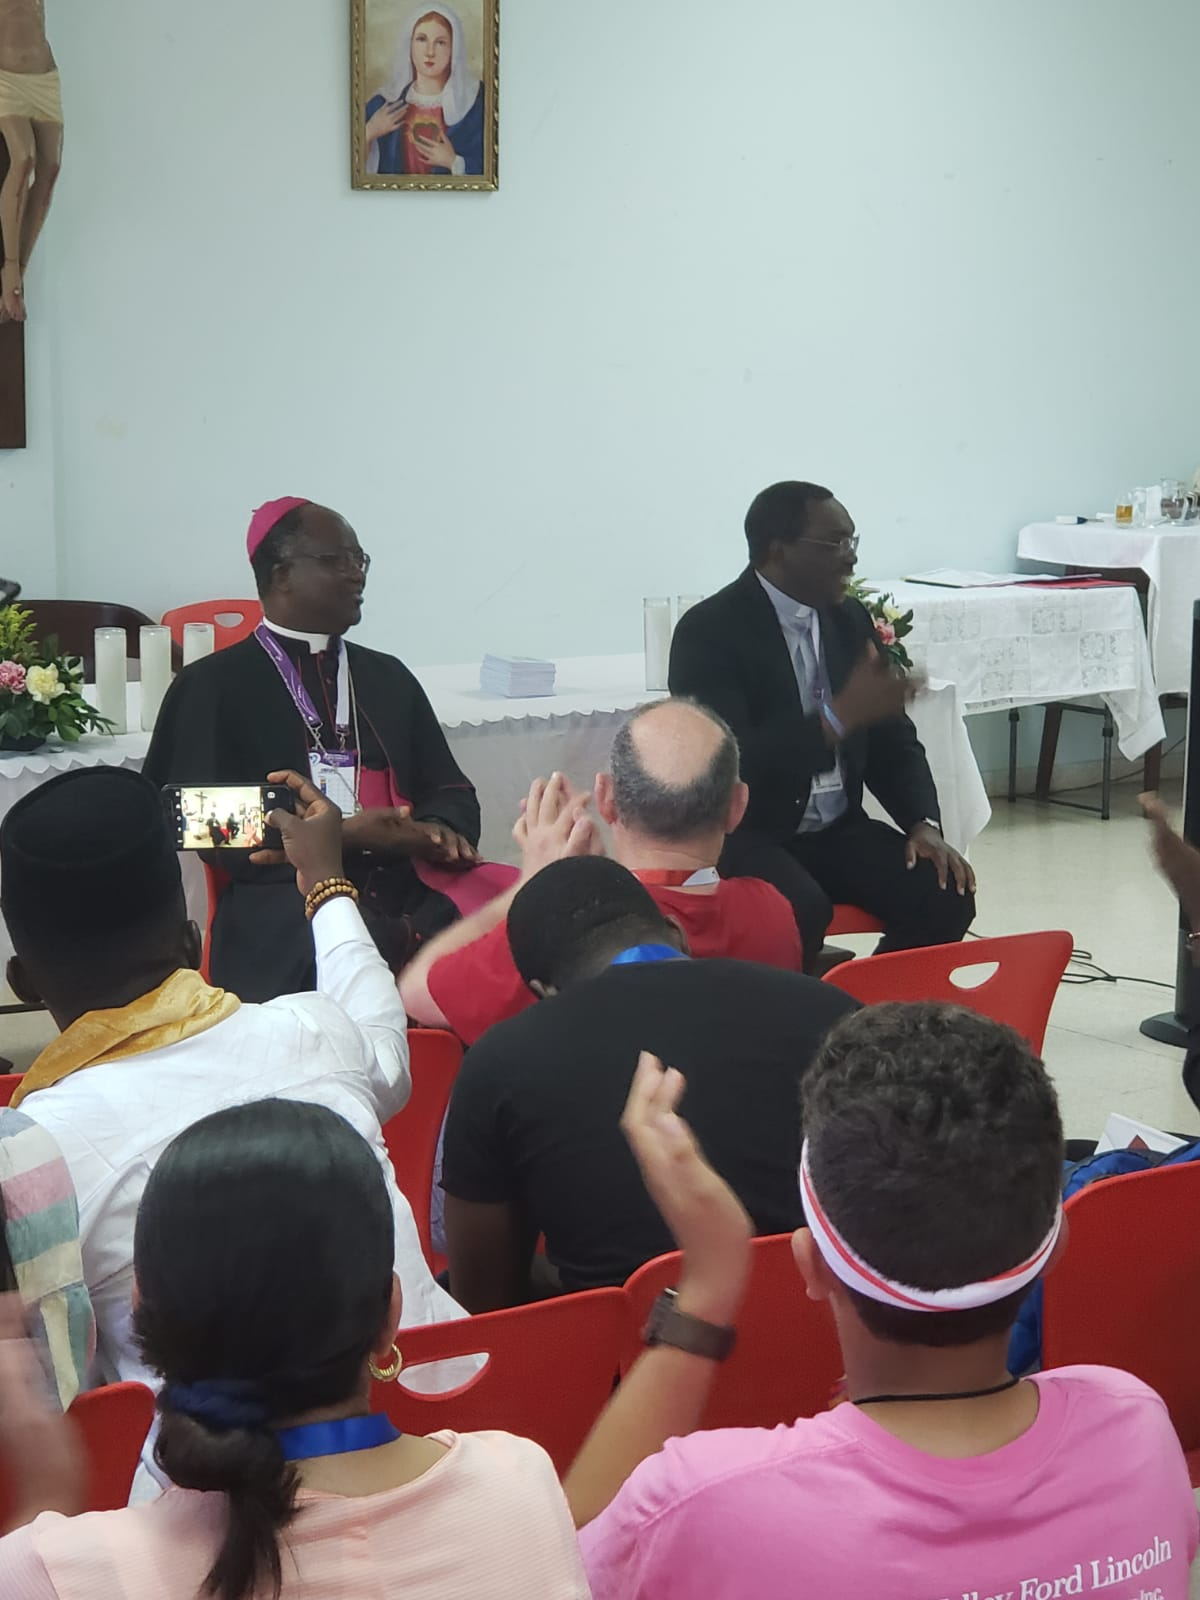 Bishops from Nigeria and Ghana